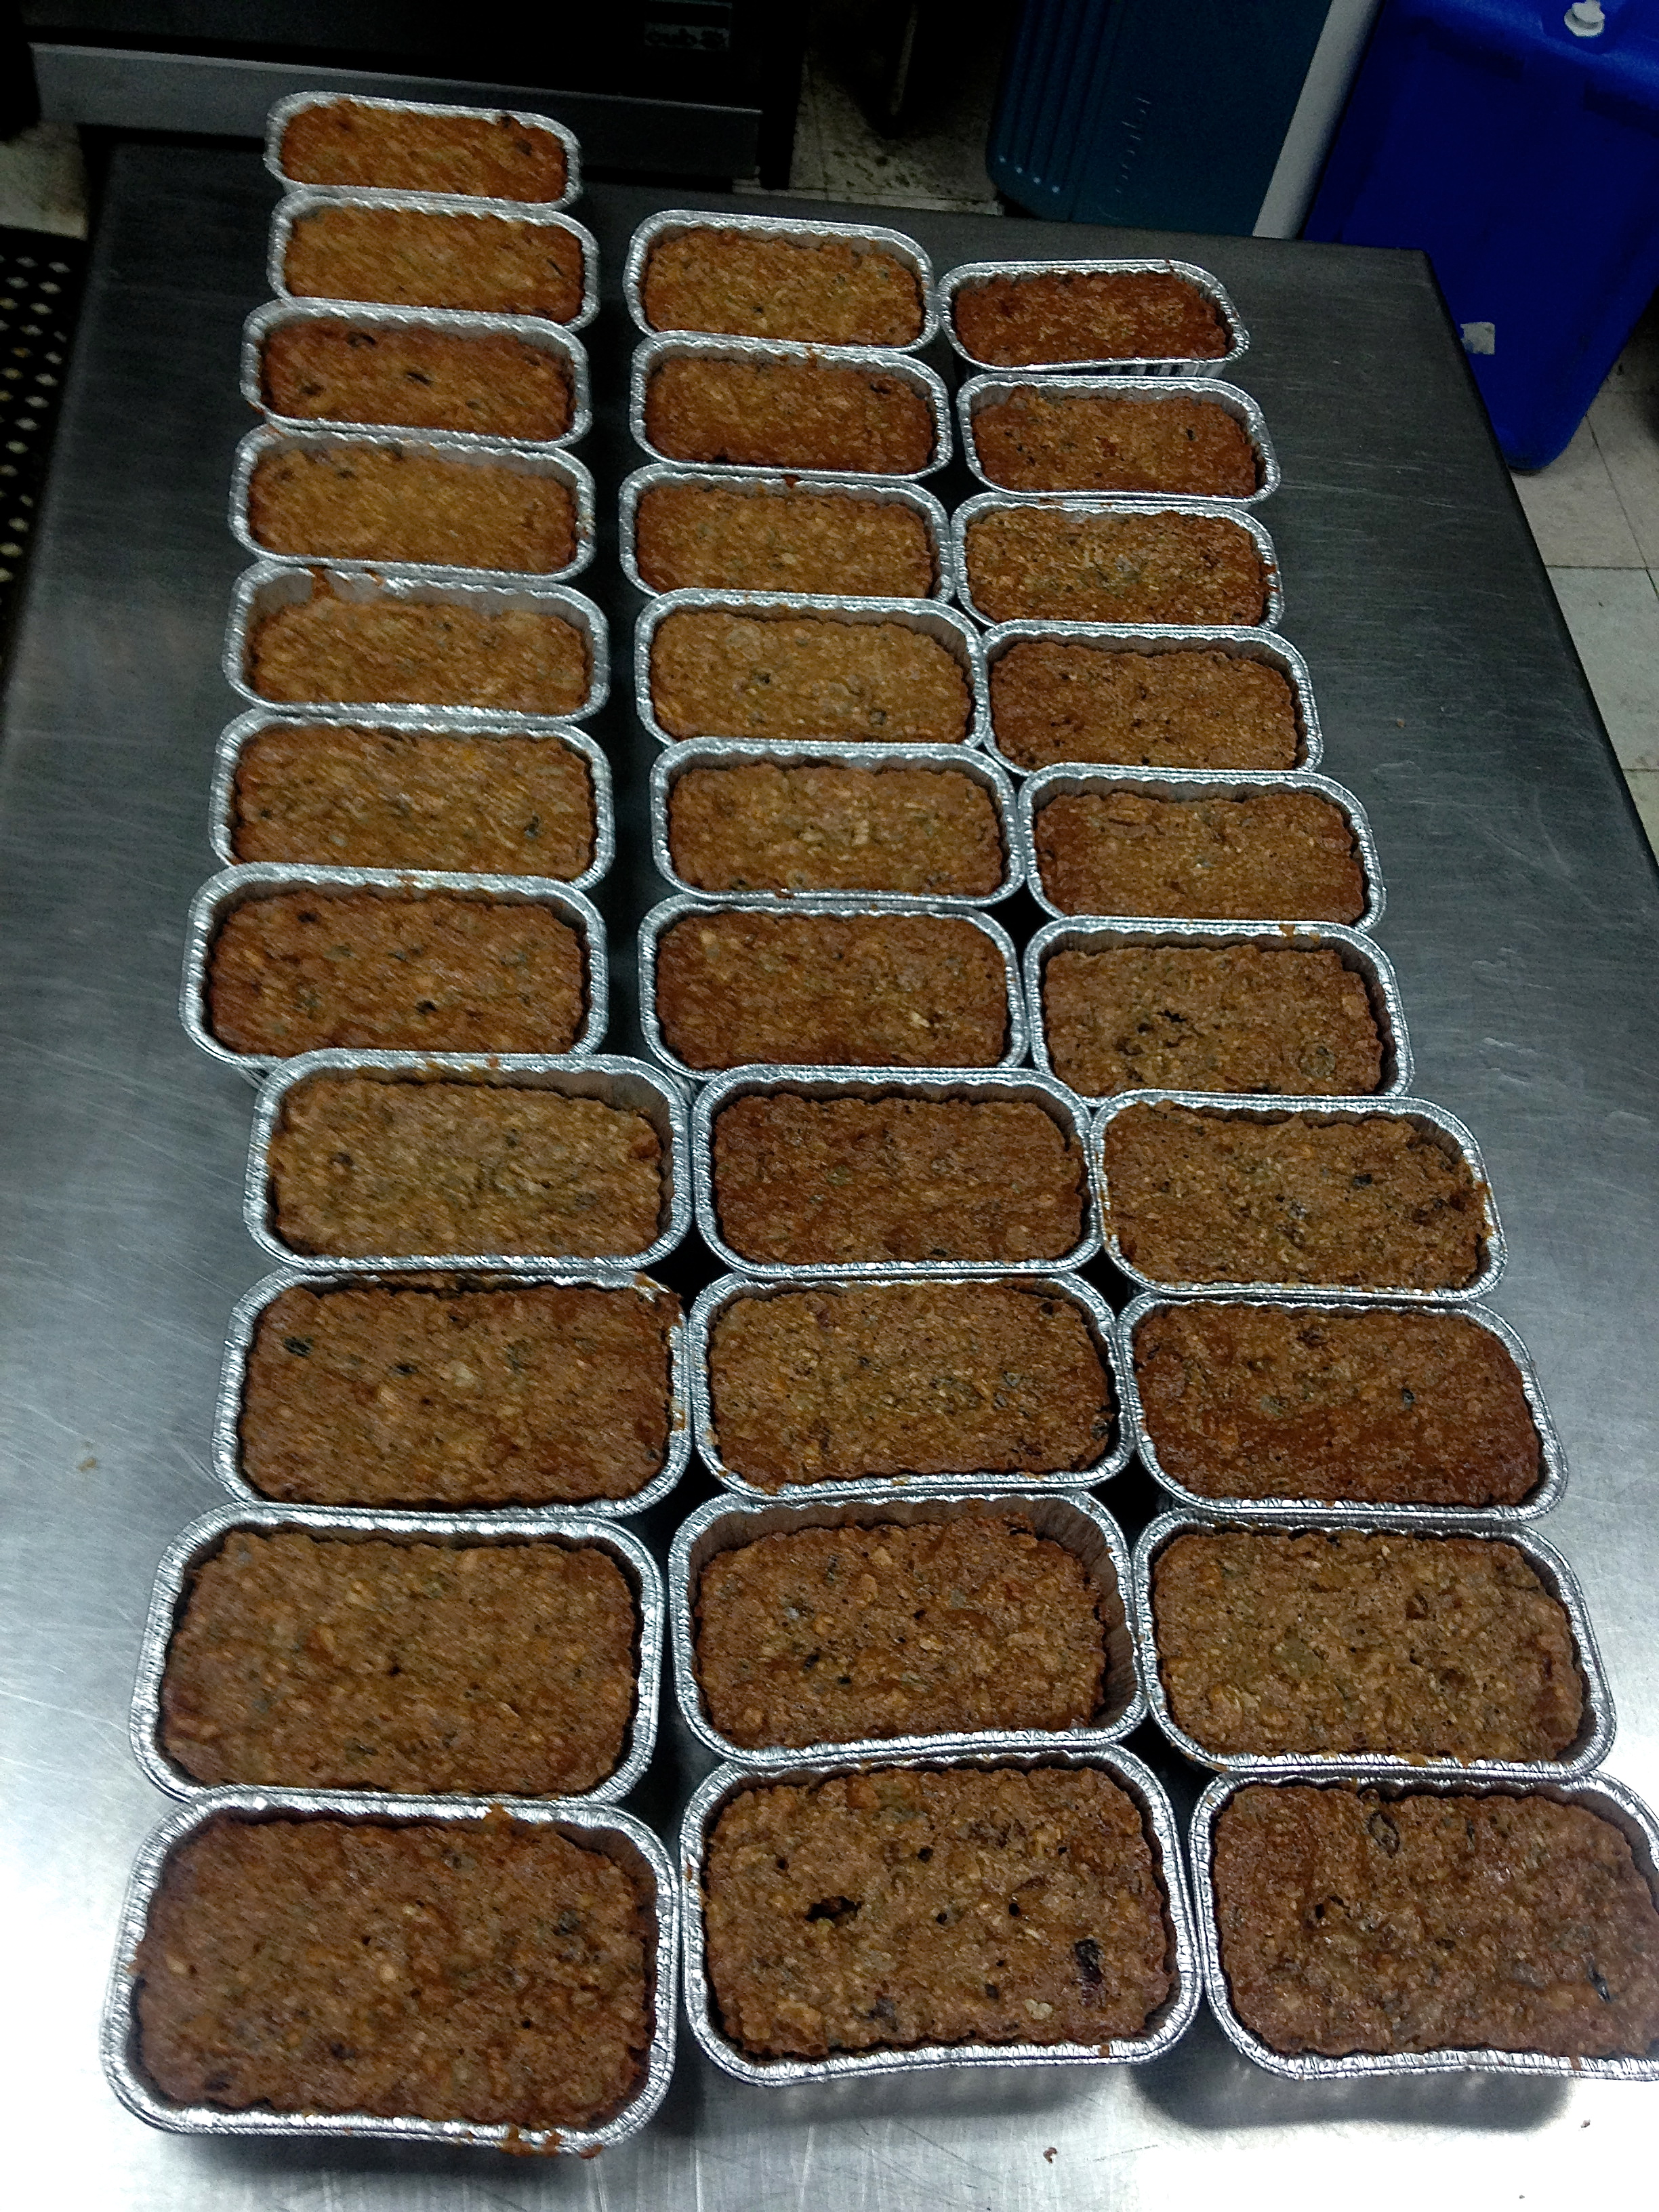 We finished reading the story in the library as the room filled with a heavenly aroma...31 fruitcakes ready to be steeped in booze...